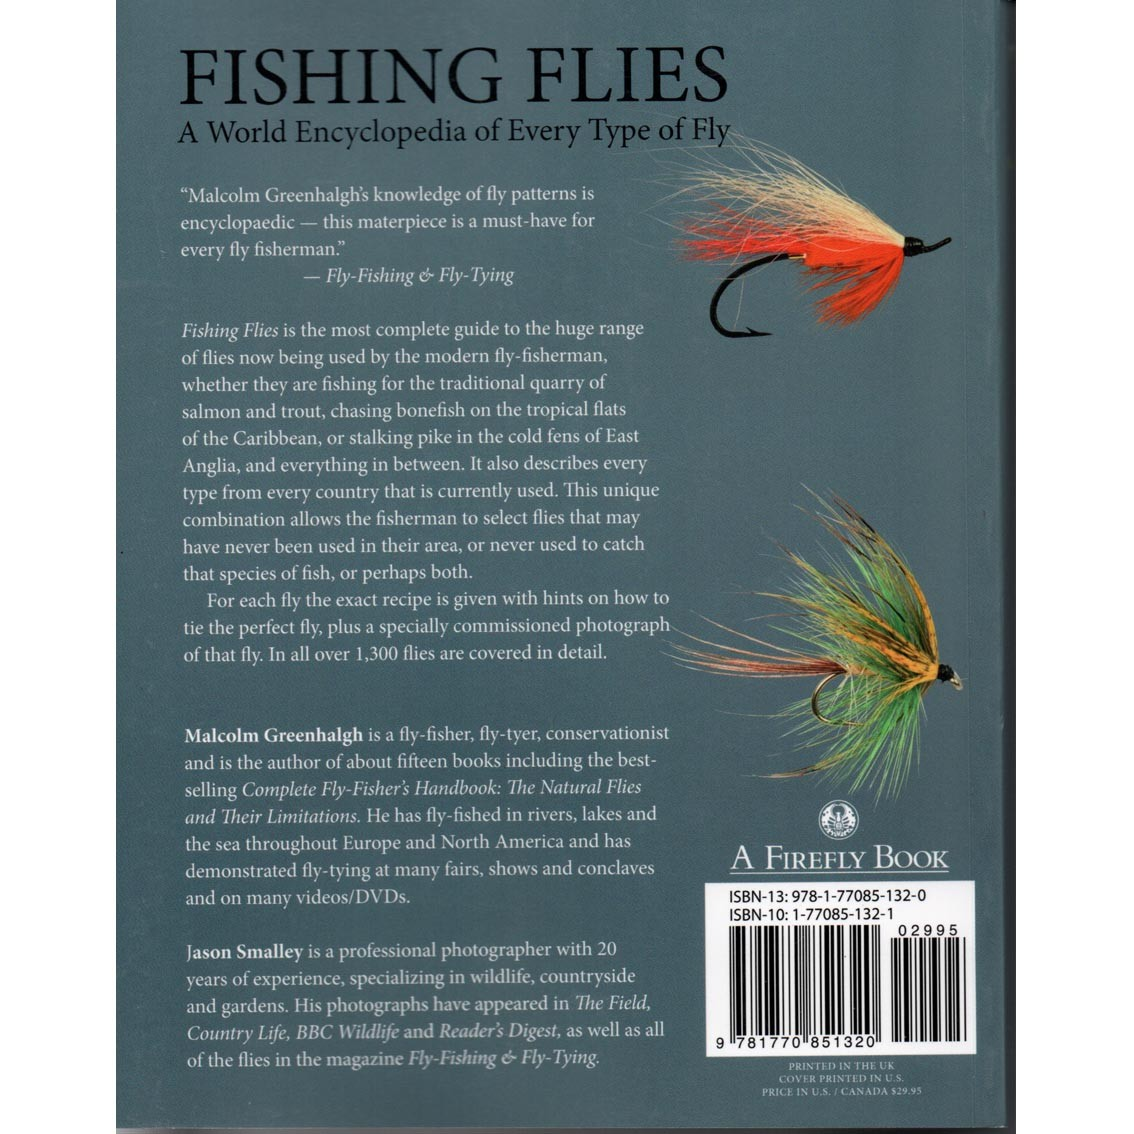 Livro Fishing Flies: A World Encyclopedia of Every Type of Fly (Greenhalgh & Jason Smalley)